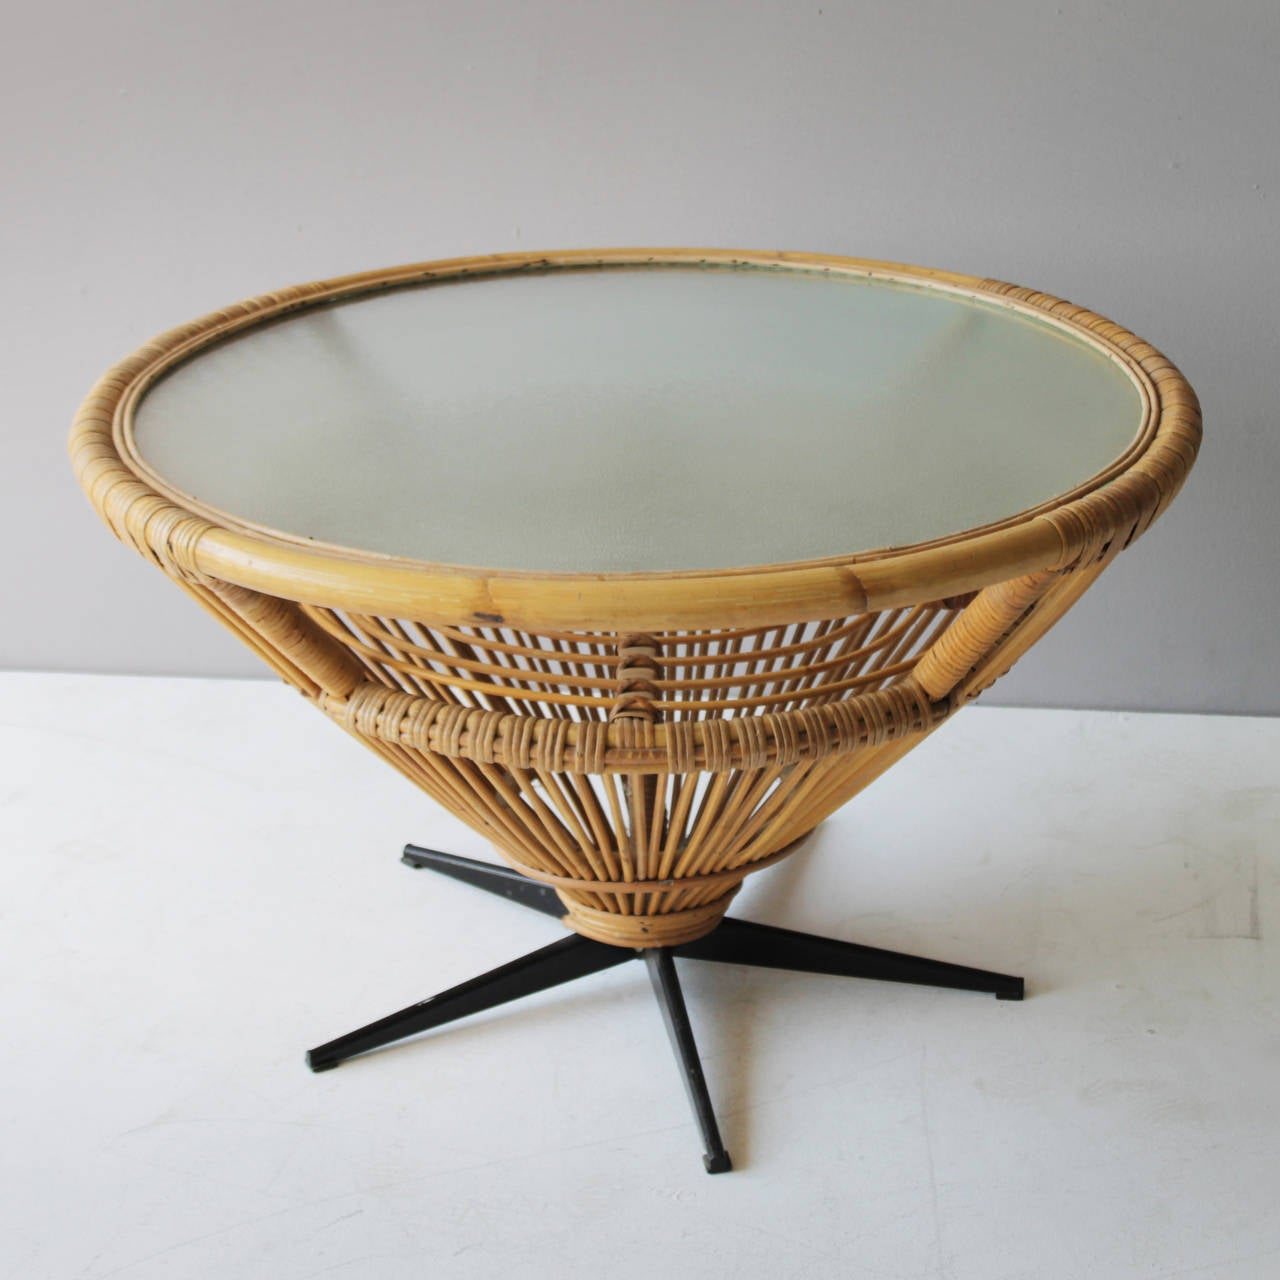 Chic Rattan Coffee Table: Rattan Coffee Table In The Style Of Franco Albini At 1stdibs